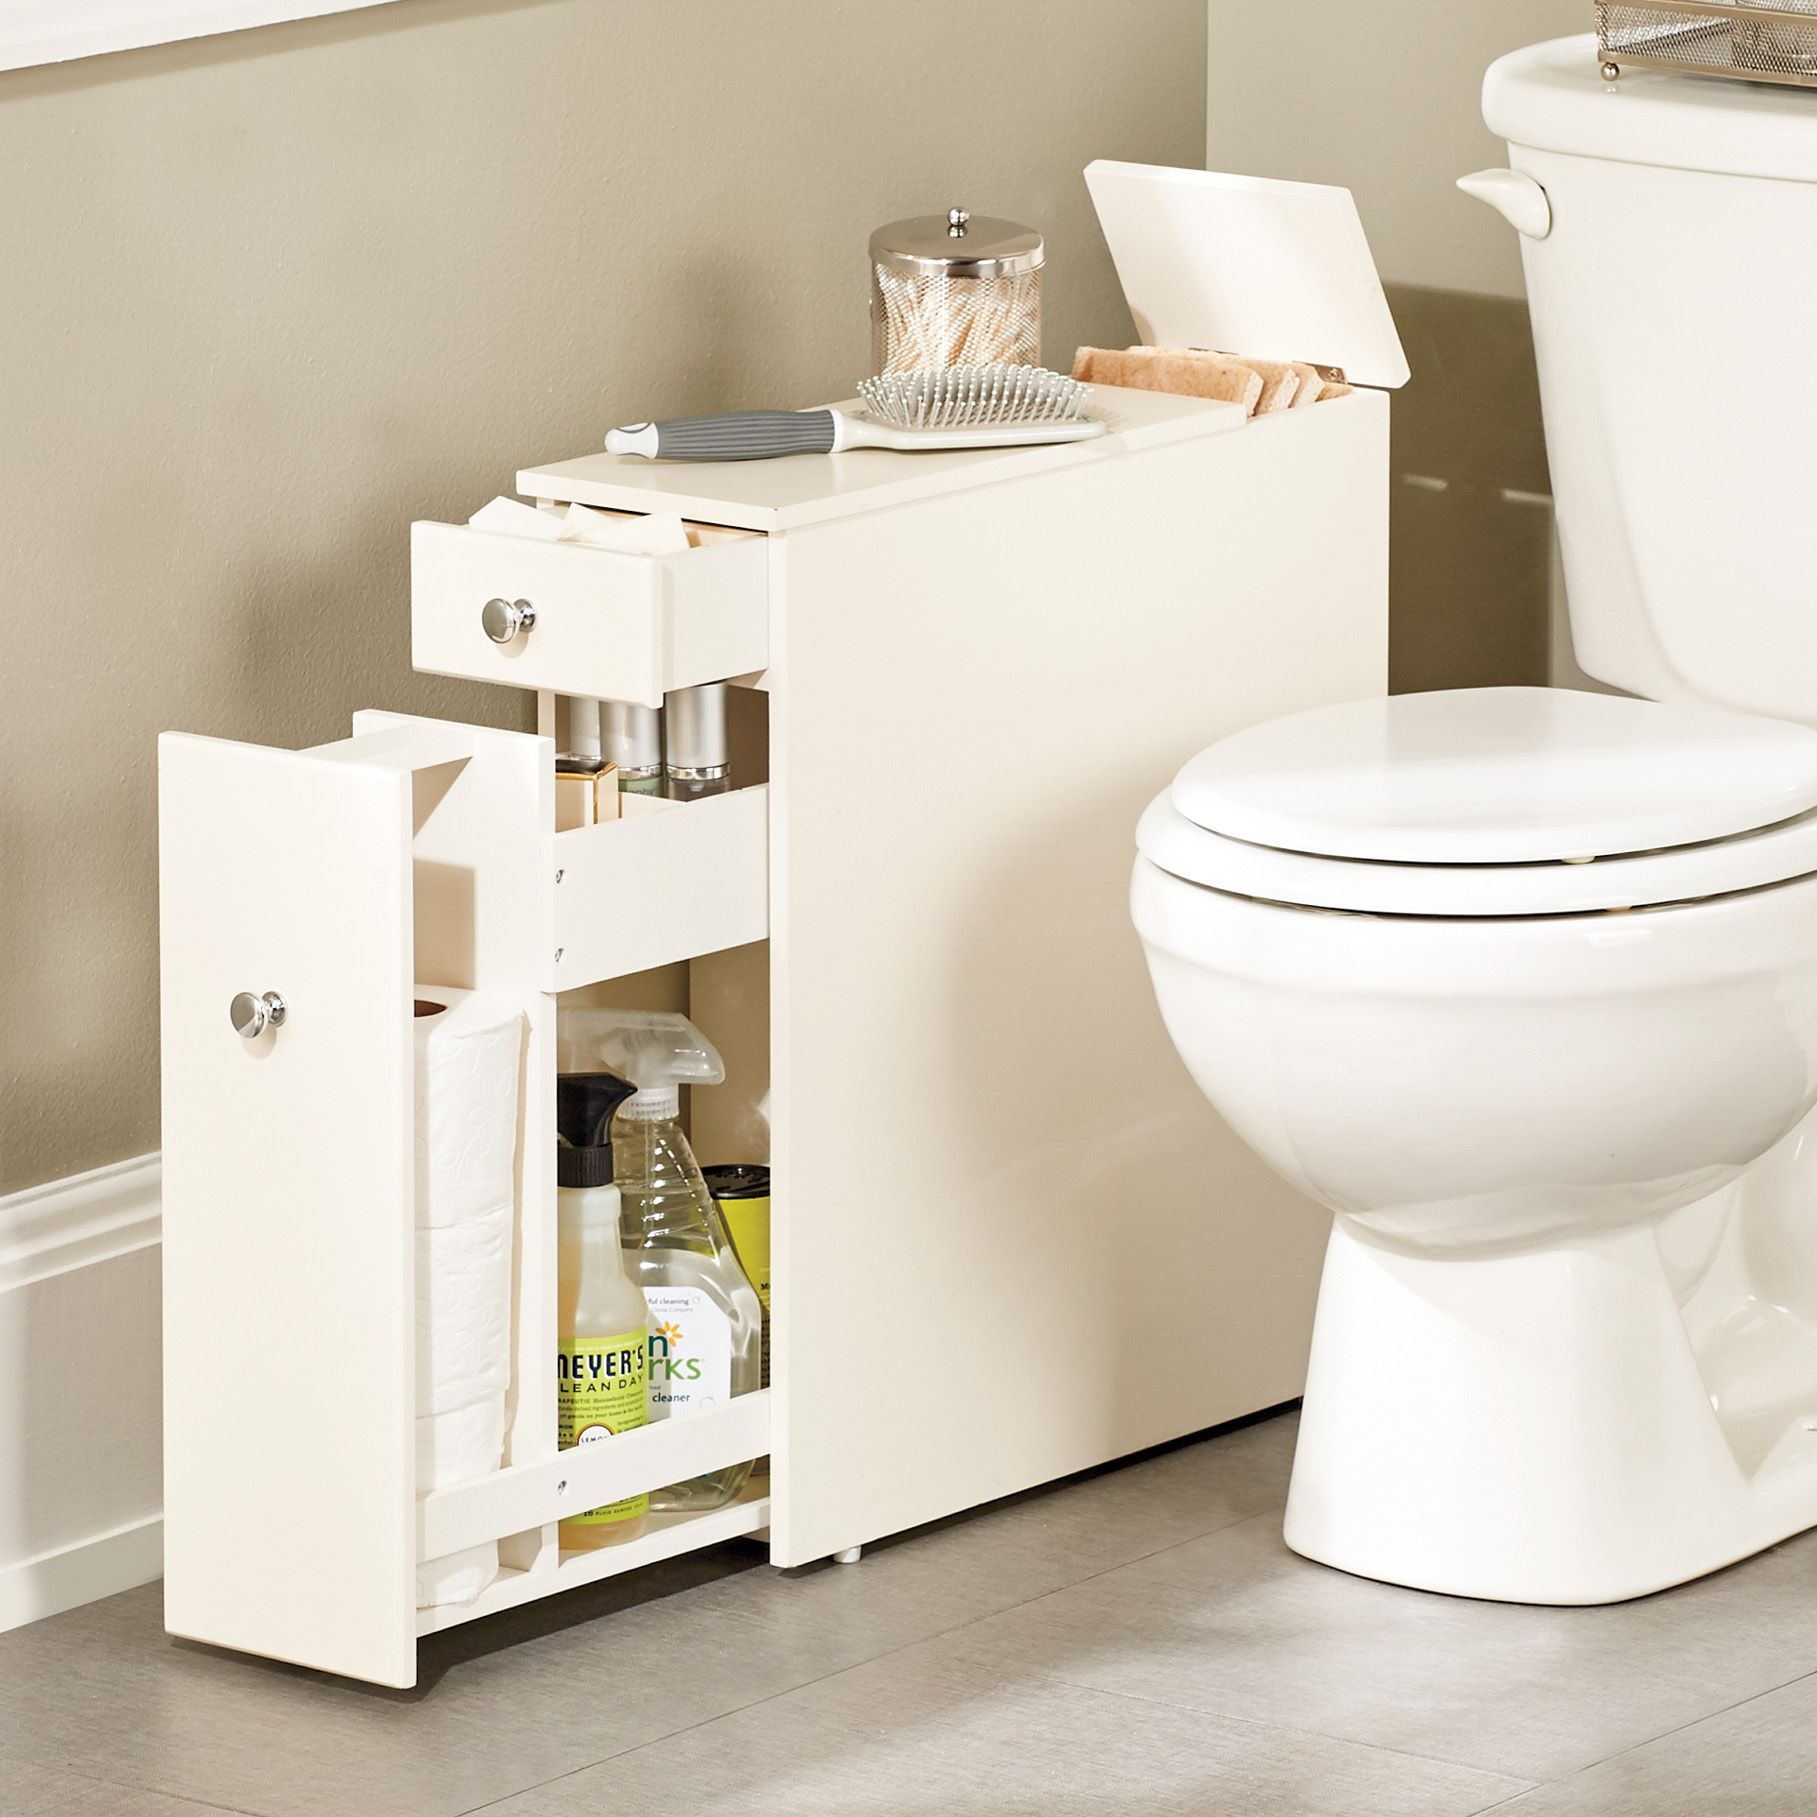 This narrow stylized bath cabinet is thin enough to fit Thin bathroom cabinet